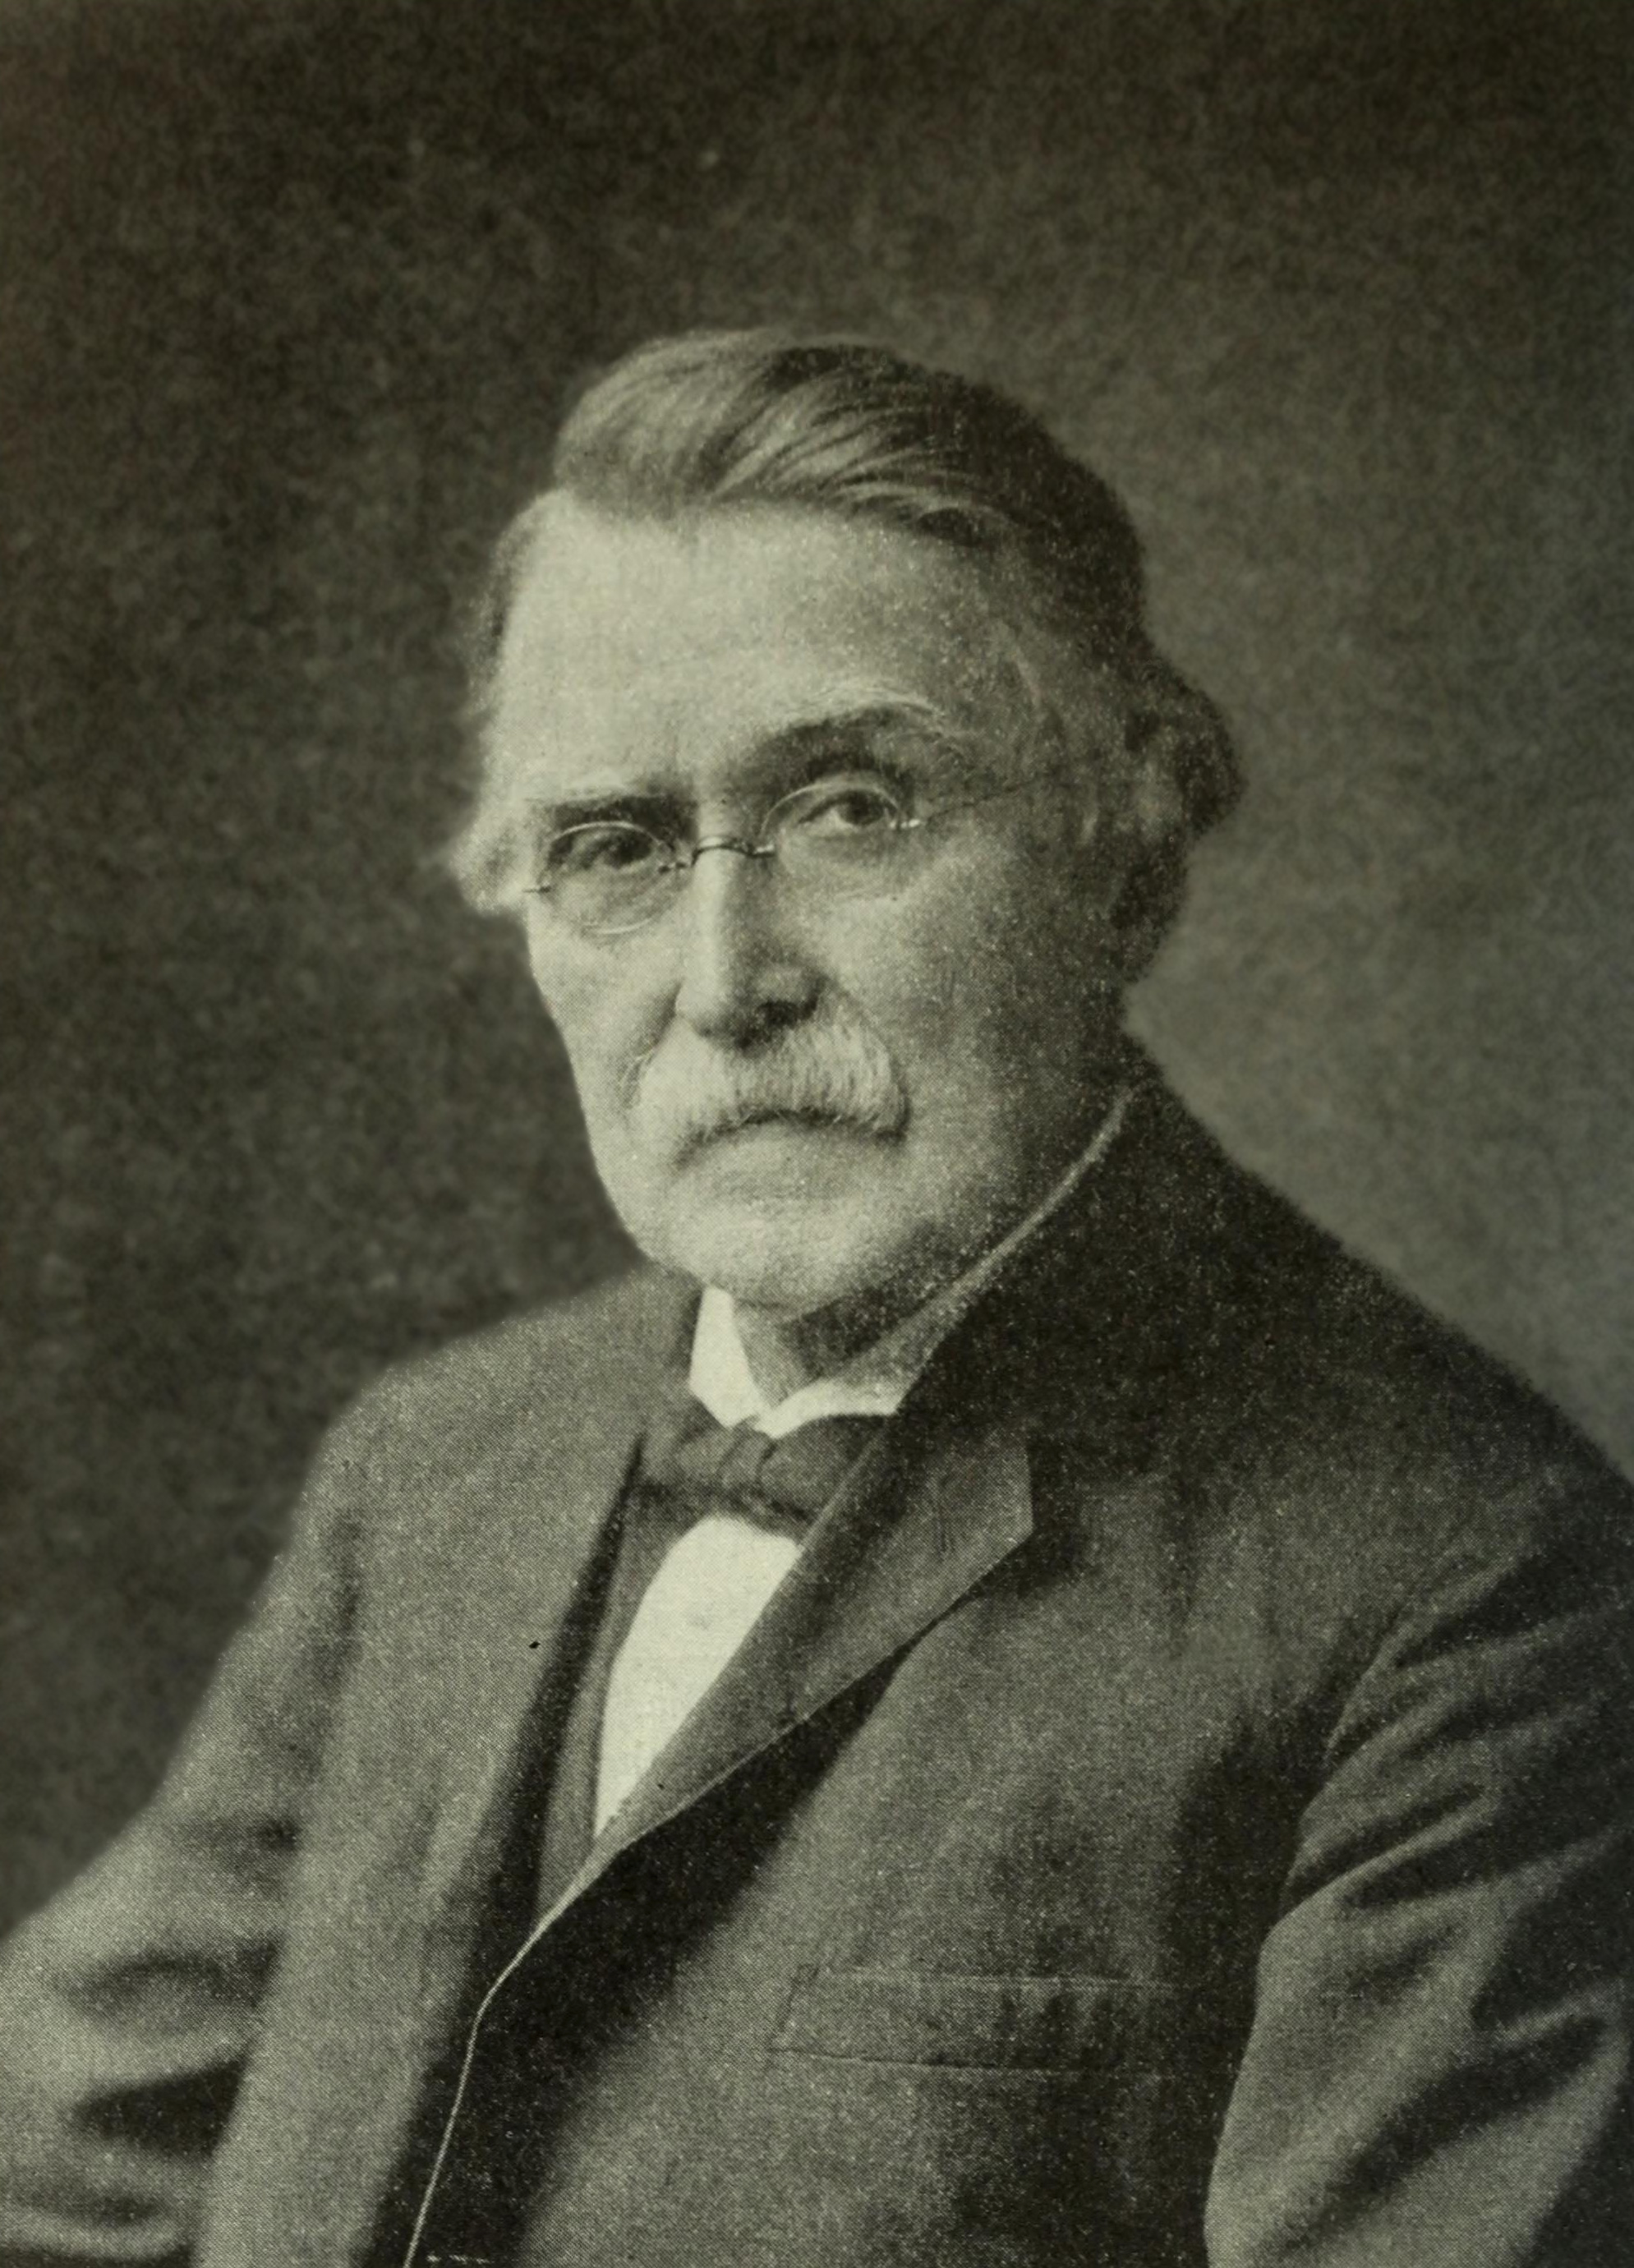 Image of Frederick Gutekunst from Wikidata